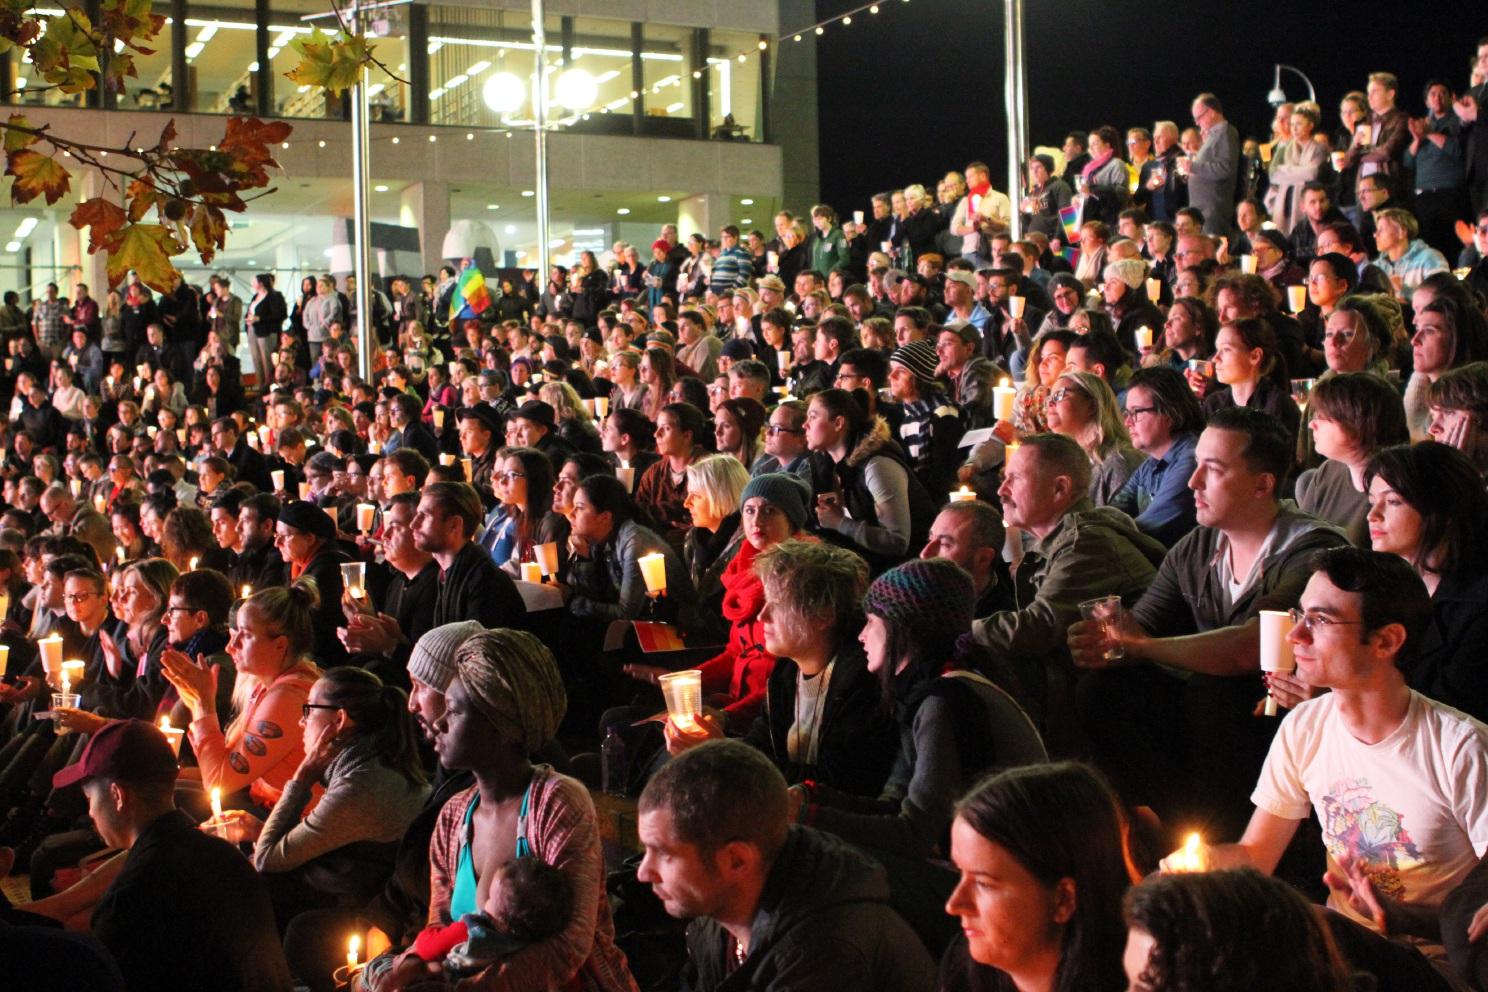 Orlando shooting: hundreds gather at Perth candle vigil in memory of 49 victims